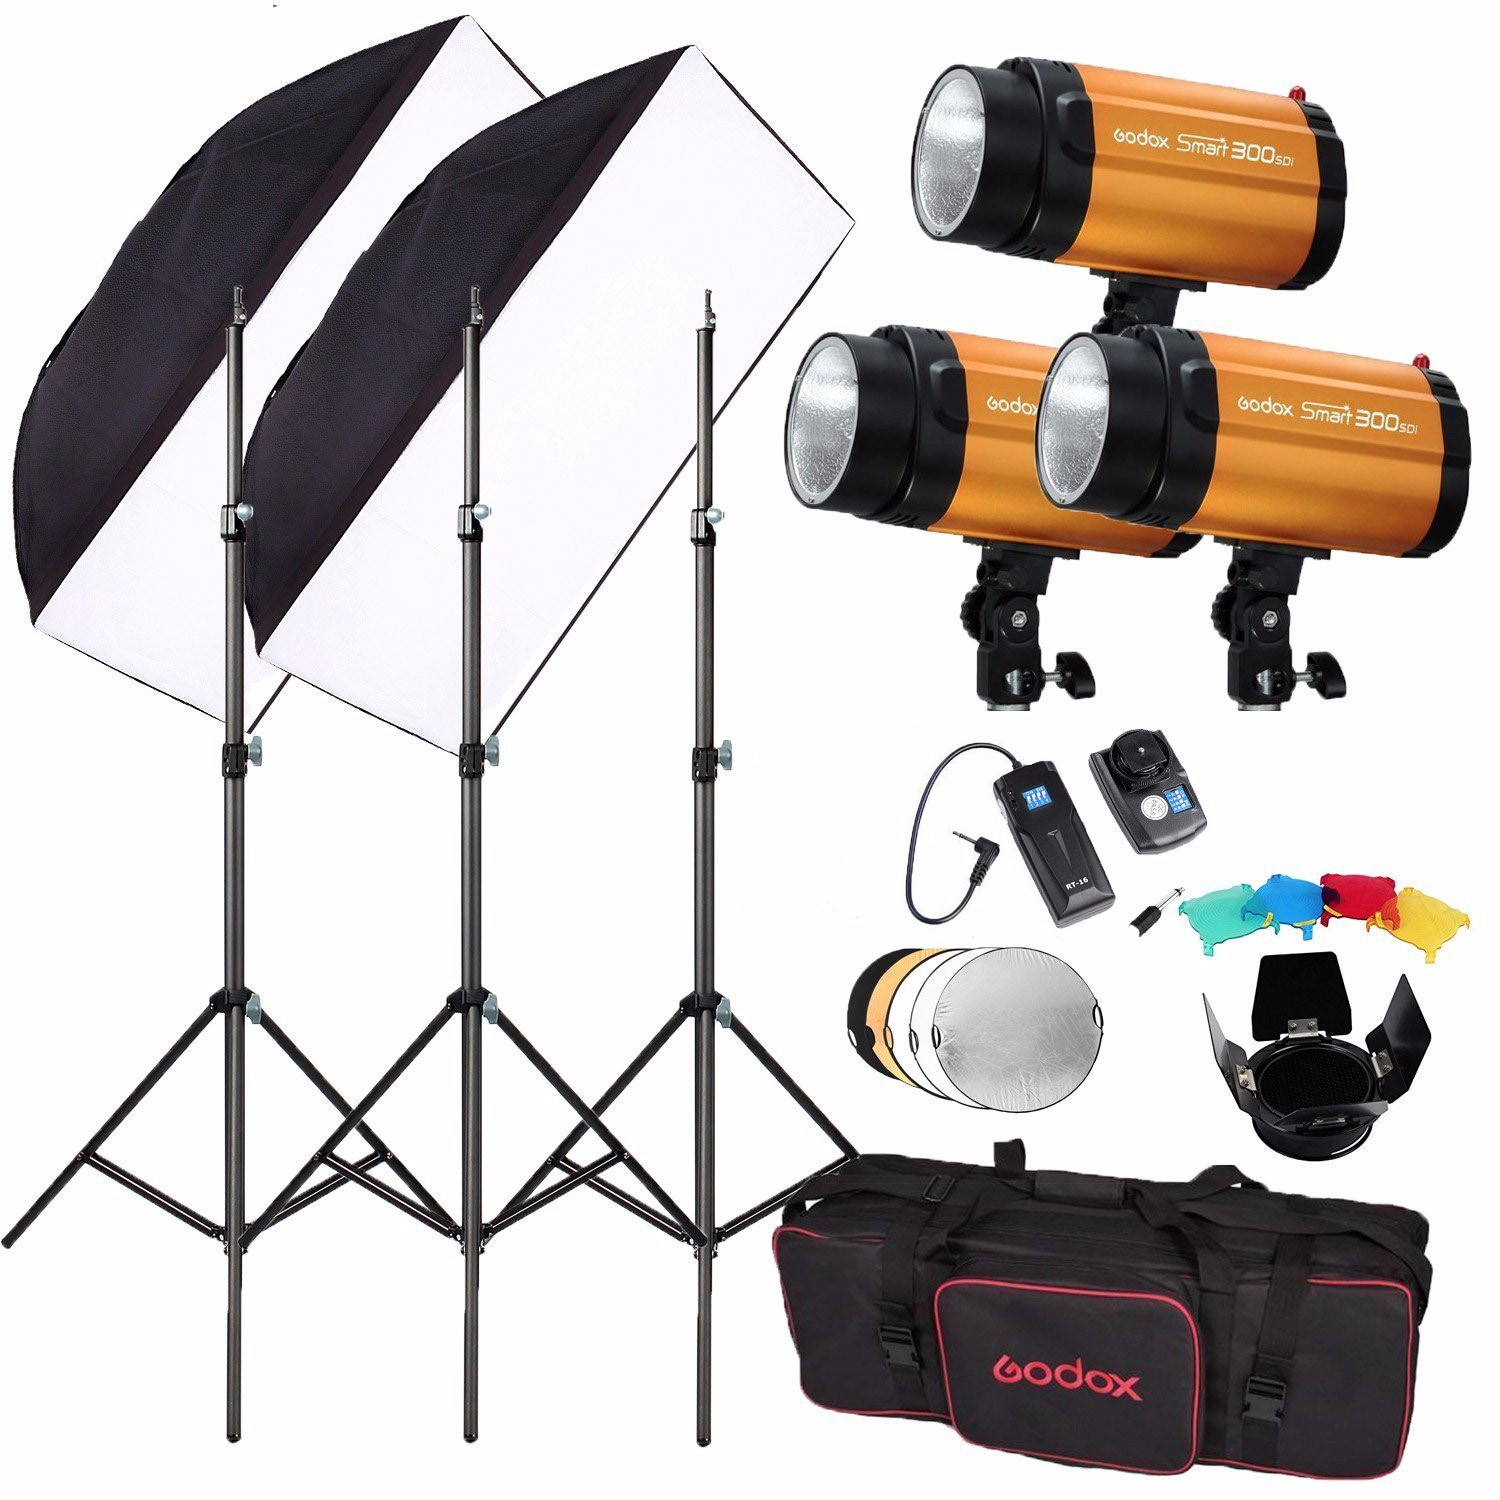 Godox 300SDI 900W(300Wx3) Studio Flash Lighting With Trigger Kit Photography Strobe Studio Light For Video Photographic Lighting cononmark 400ws g4 0 hss photographic studio outdoor strobe flashlight 3g remote video light for dslr camera